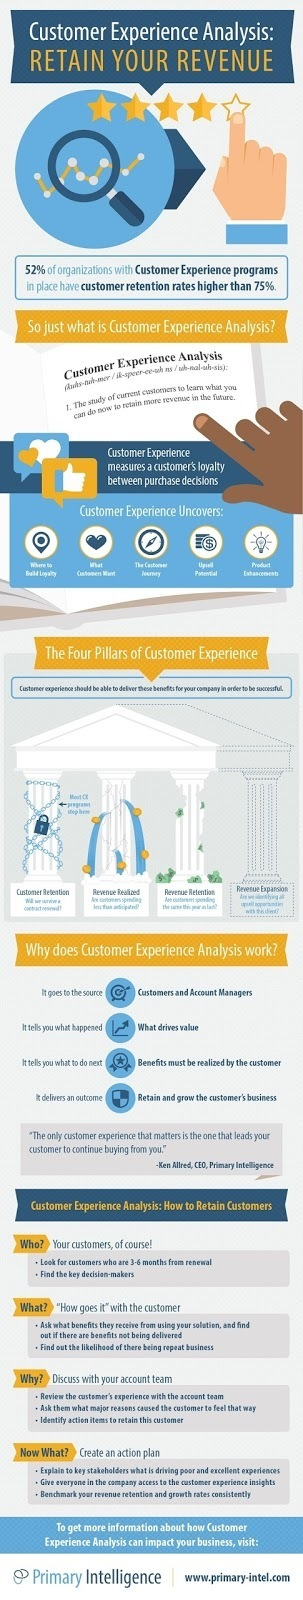 Customer Experience Analysis: How to Retain Your Customers [Infographic]   Customer and Employee Loyalty, Rewards &  Engagement   Scoop.it